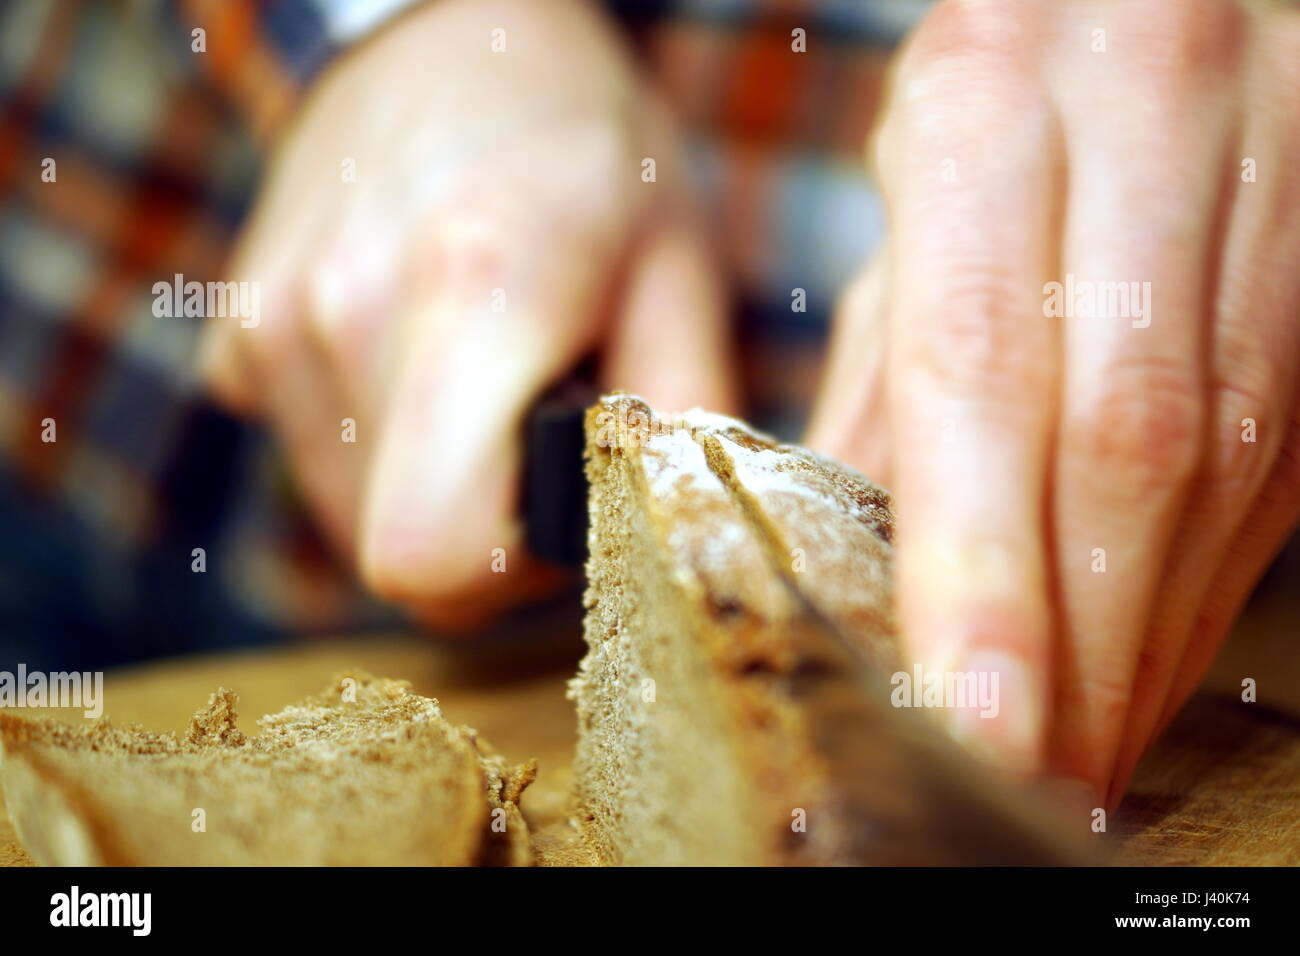 Cutting bread with a knife - Stock Image